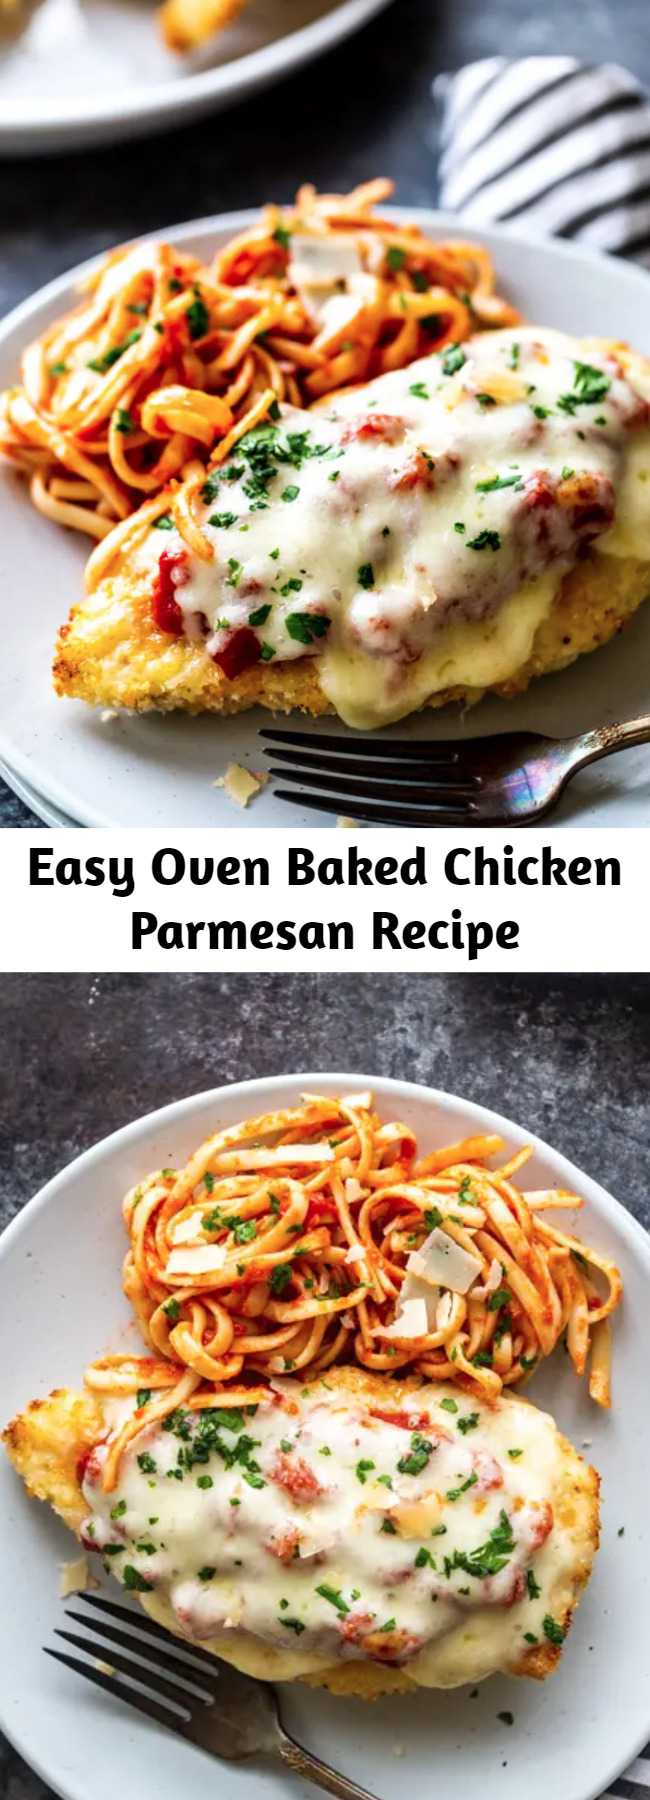 Easy Oven Baked Chicken Parmesan Recipe - This delicious Oven Baked Chicken Parmesan recipe is easy and doesn't require any frying. Because this chicken Parmesan is baked, it is healthy, quick and easy! Make this crispy baked Parmesan crusted chicken for dinner tonight in about thirty minutes!